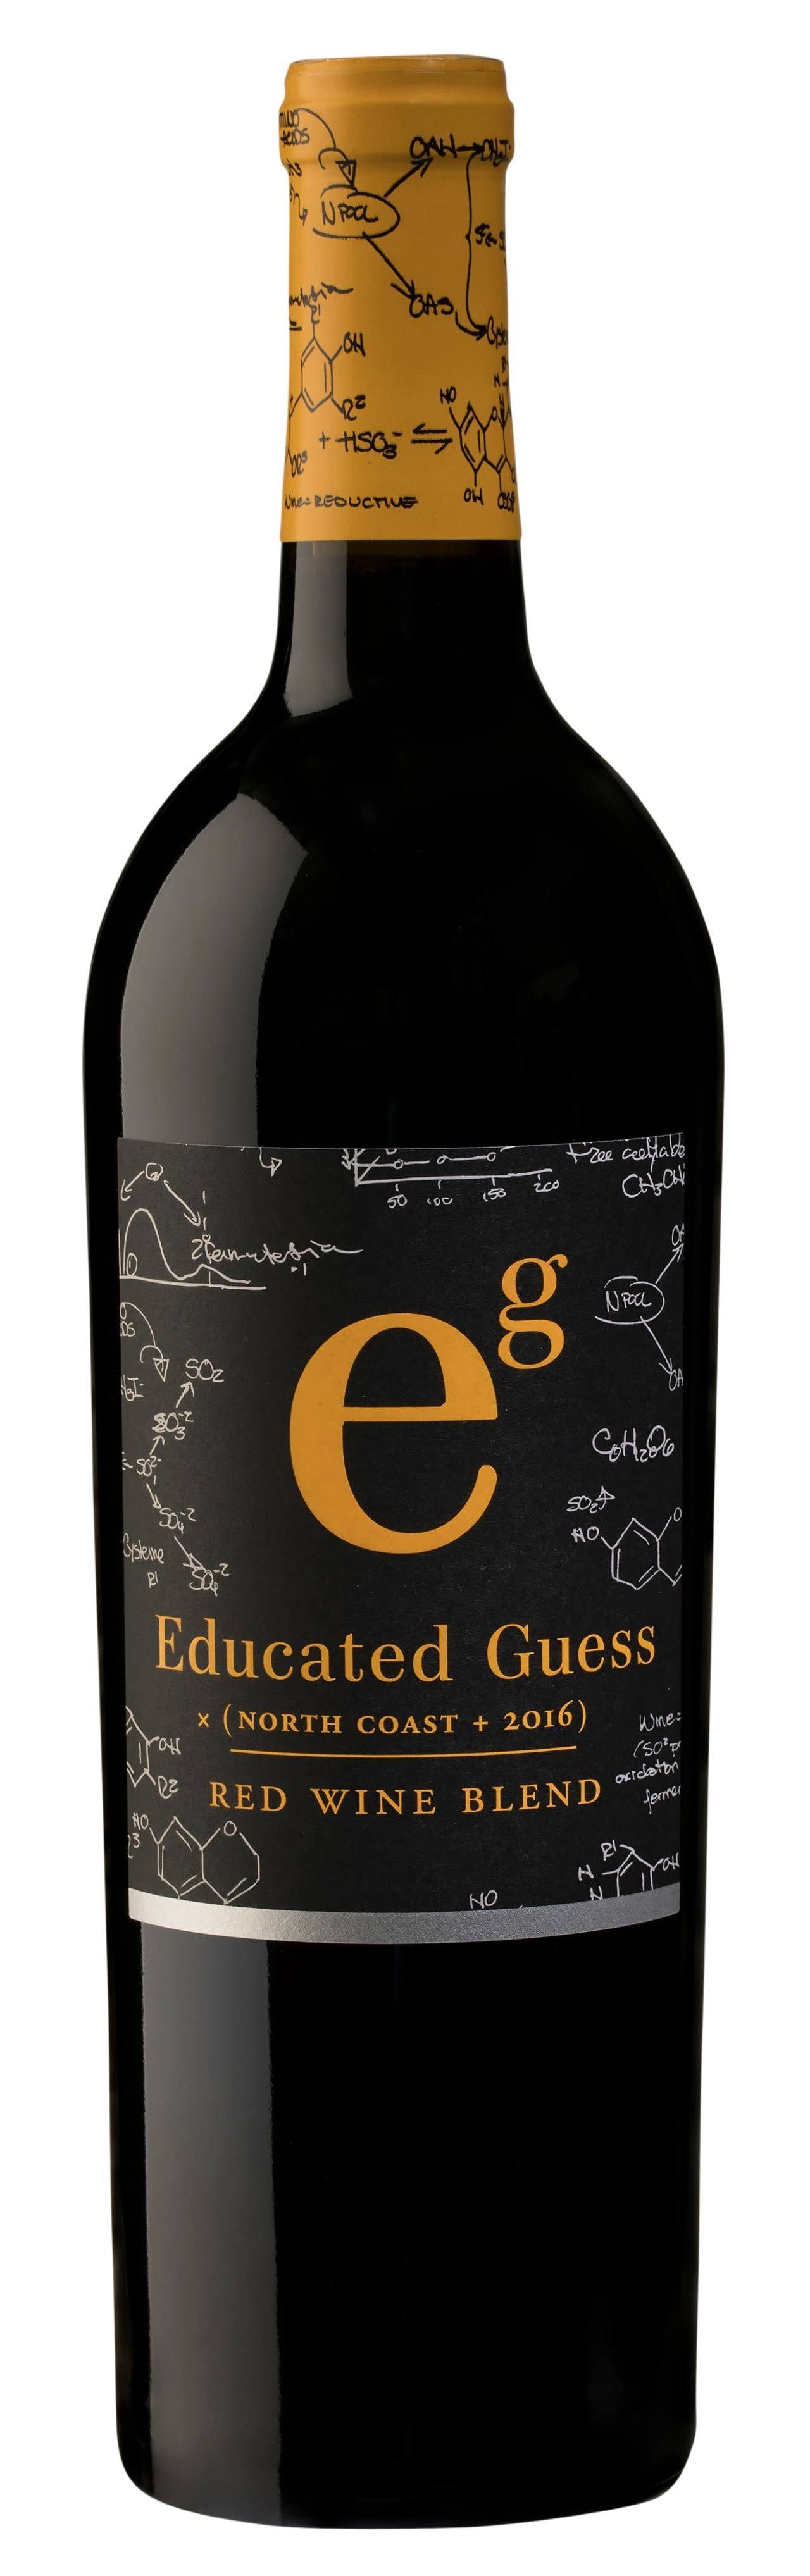 Educated Guess Red Wine Blend, North Coast, 2016 - 750 ml